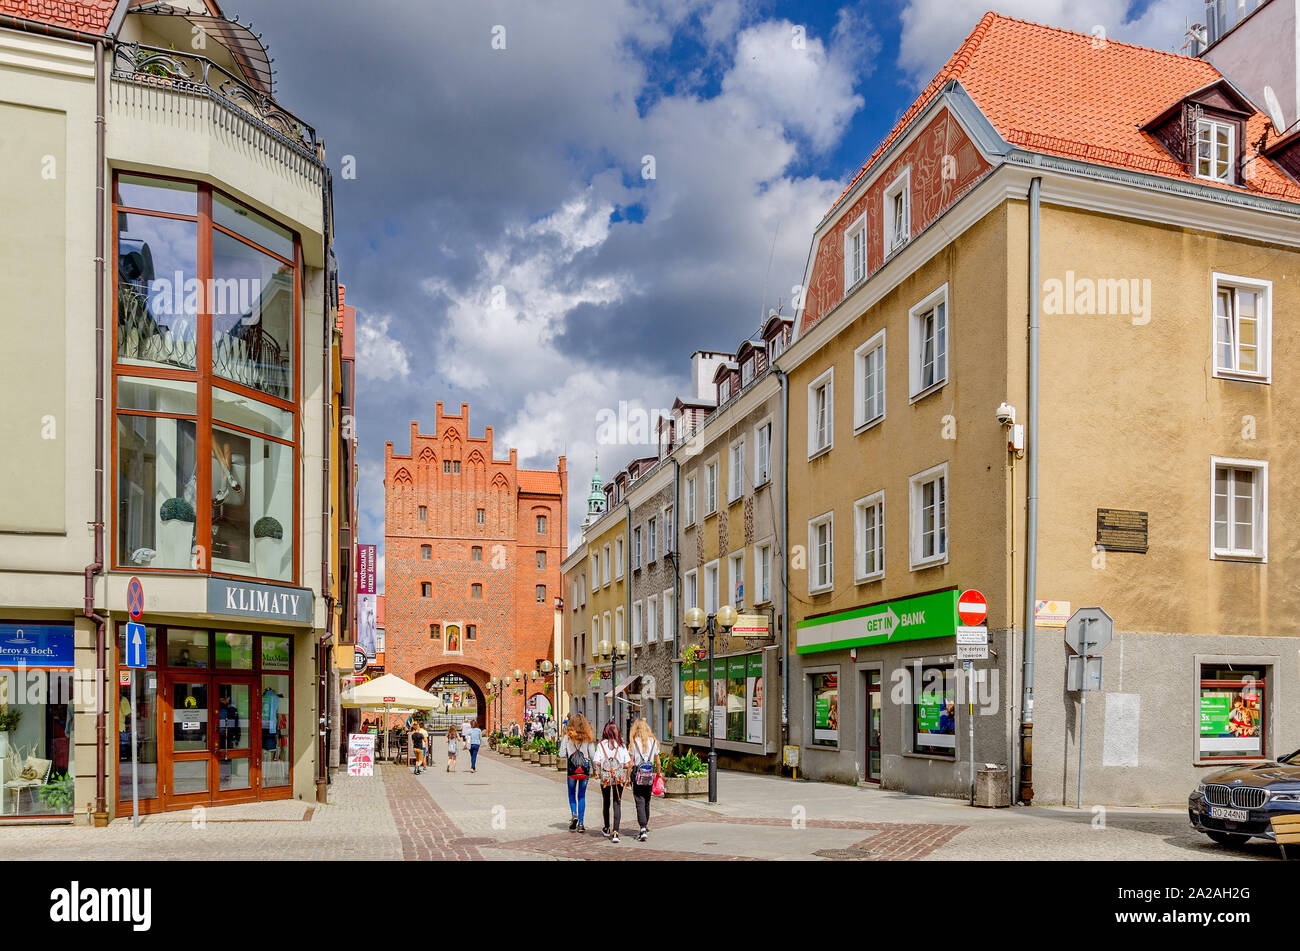 Olsztyn (ger.: Allenstein), Warmian-mazurian province, Poland. The Old Town Marketplace  with the High Gate in the background. Stock Photo